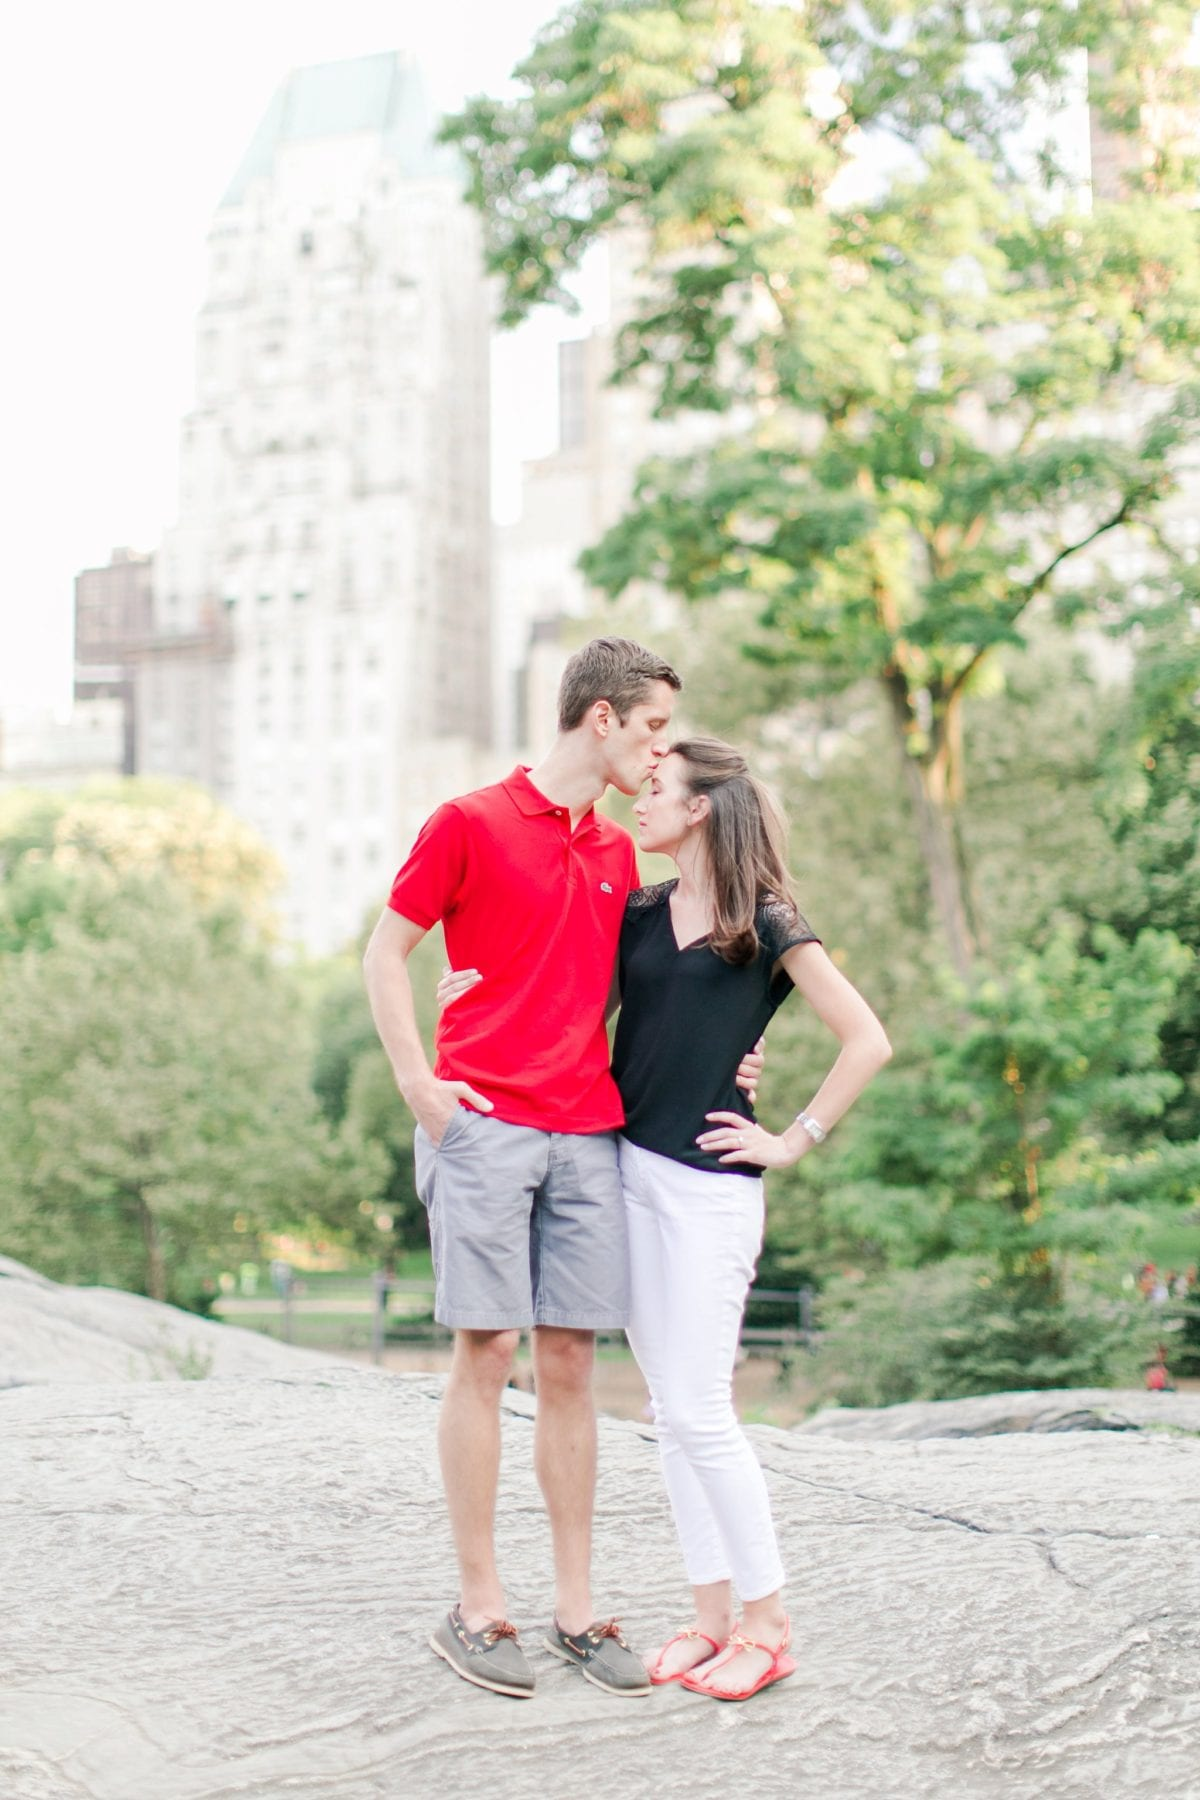 West Village Central Park Engagement Photos NYC Wedding Photographer Megan Kelsey Photography-177.jpg